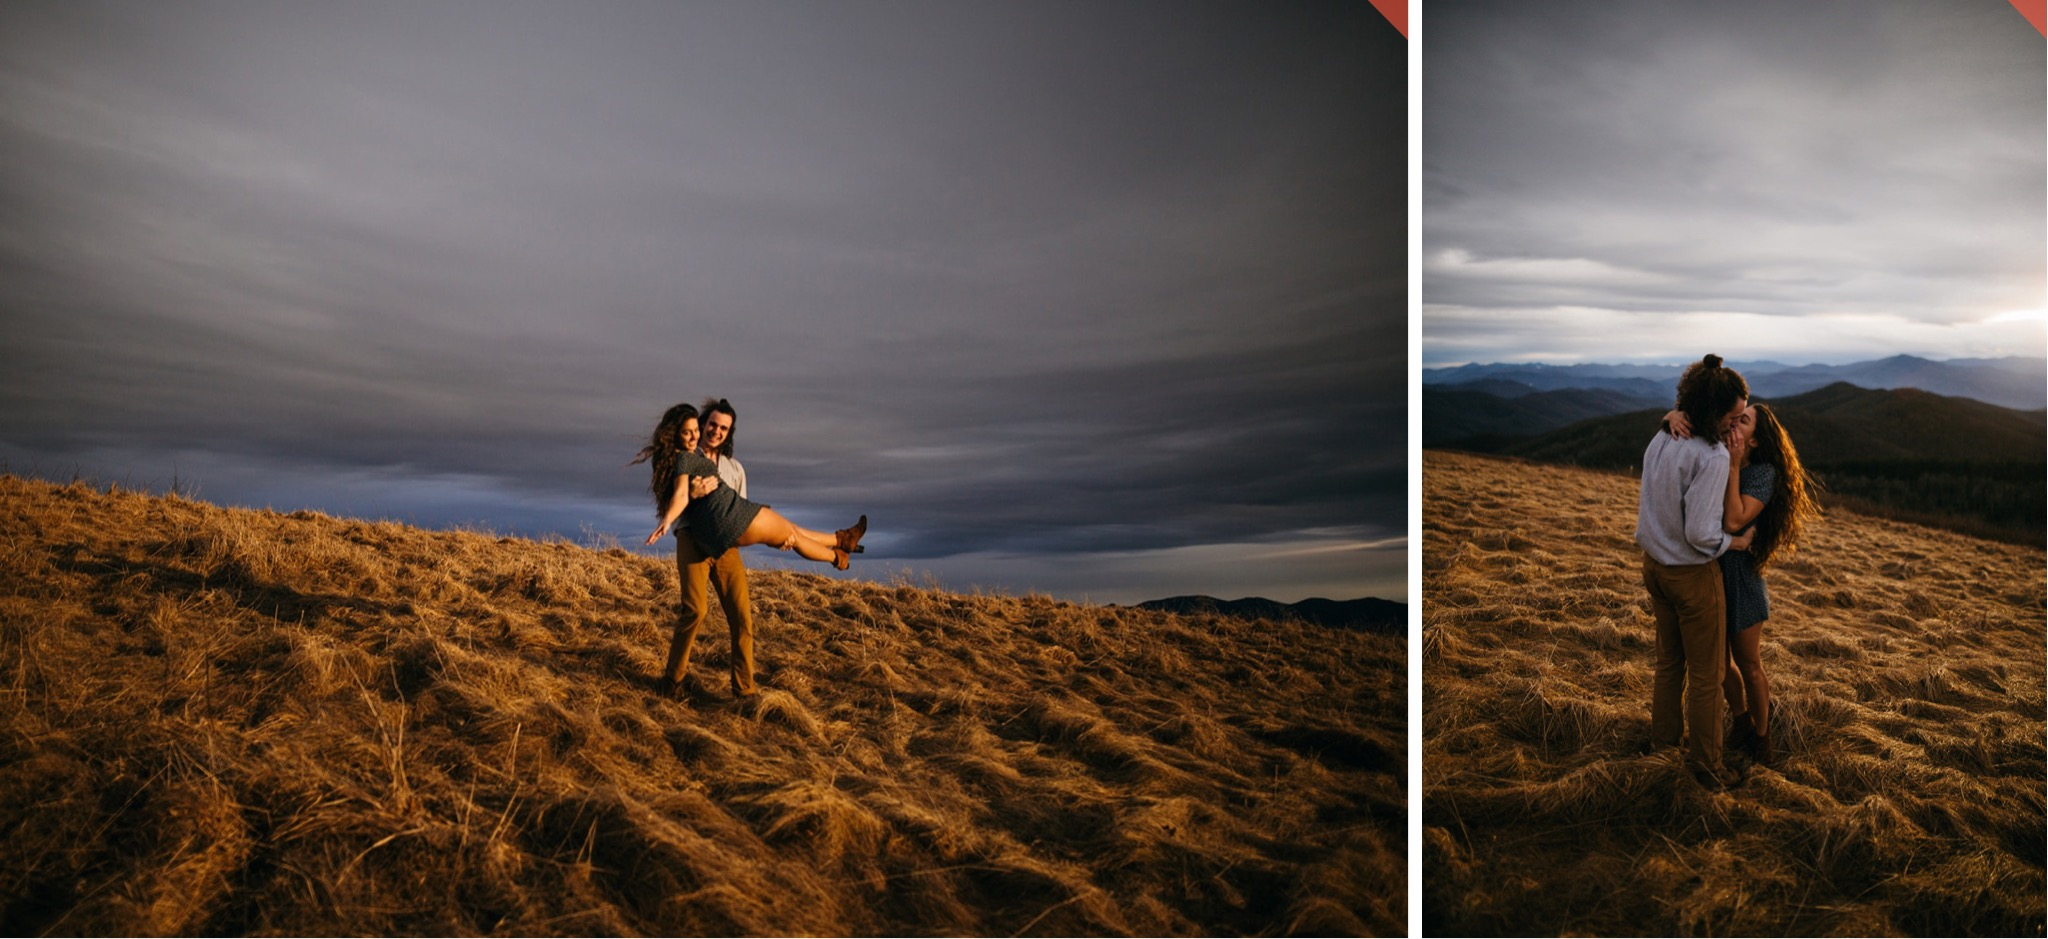 A couple embraces in the sunset light at the top of Max Patch.